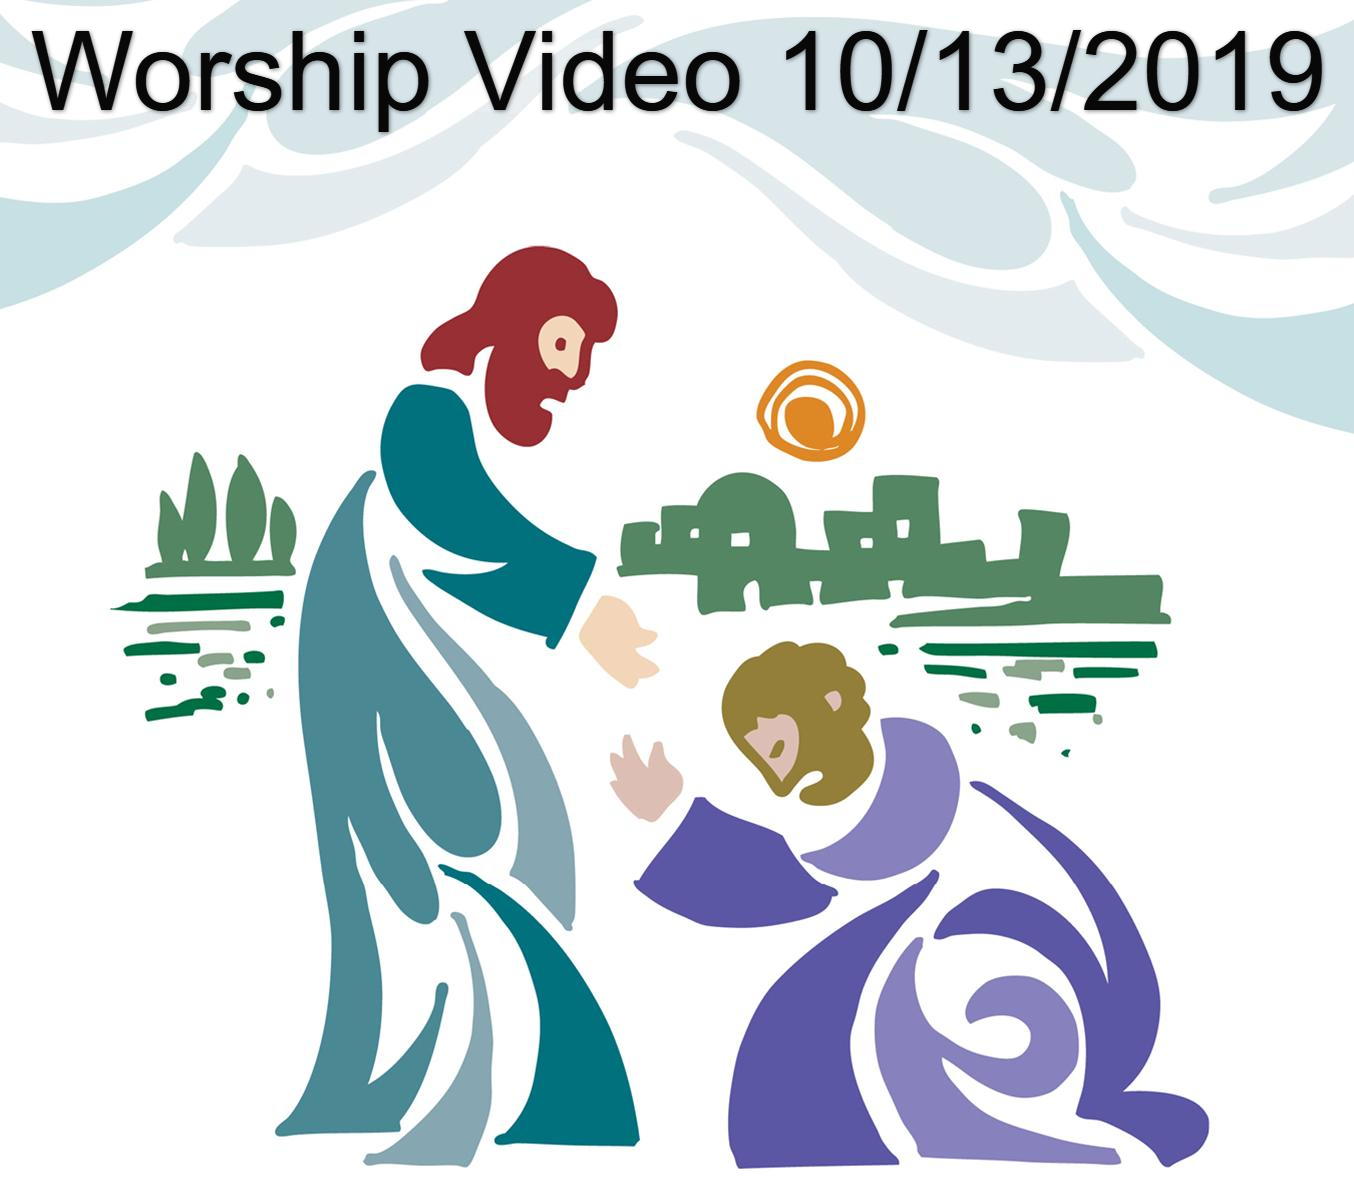 Worship Message 10/13/2019